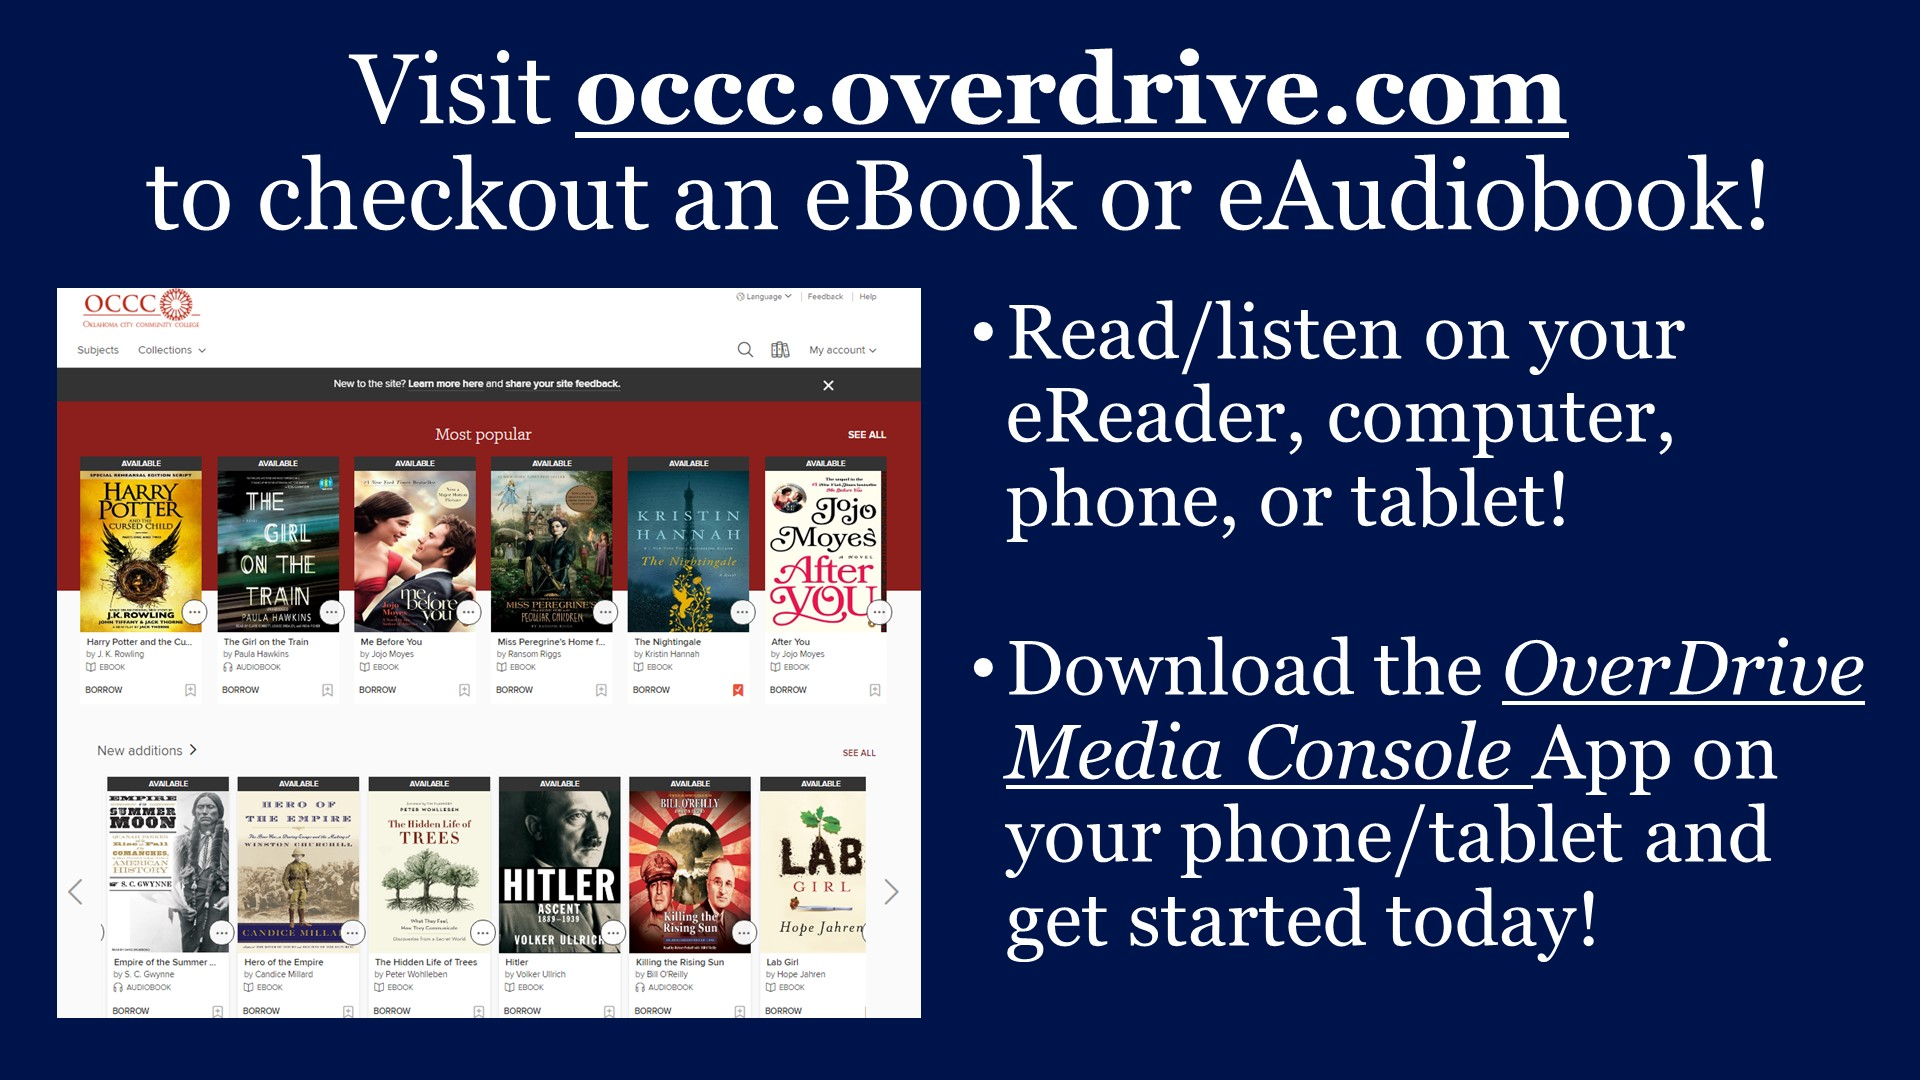 Promo for OverDrive